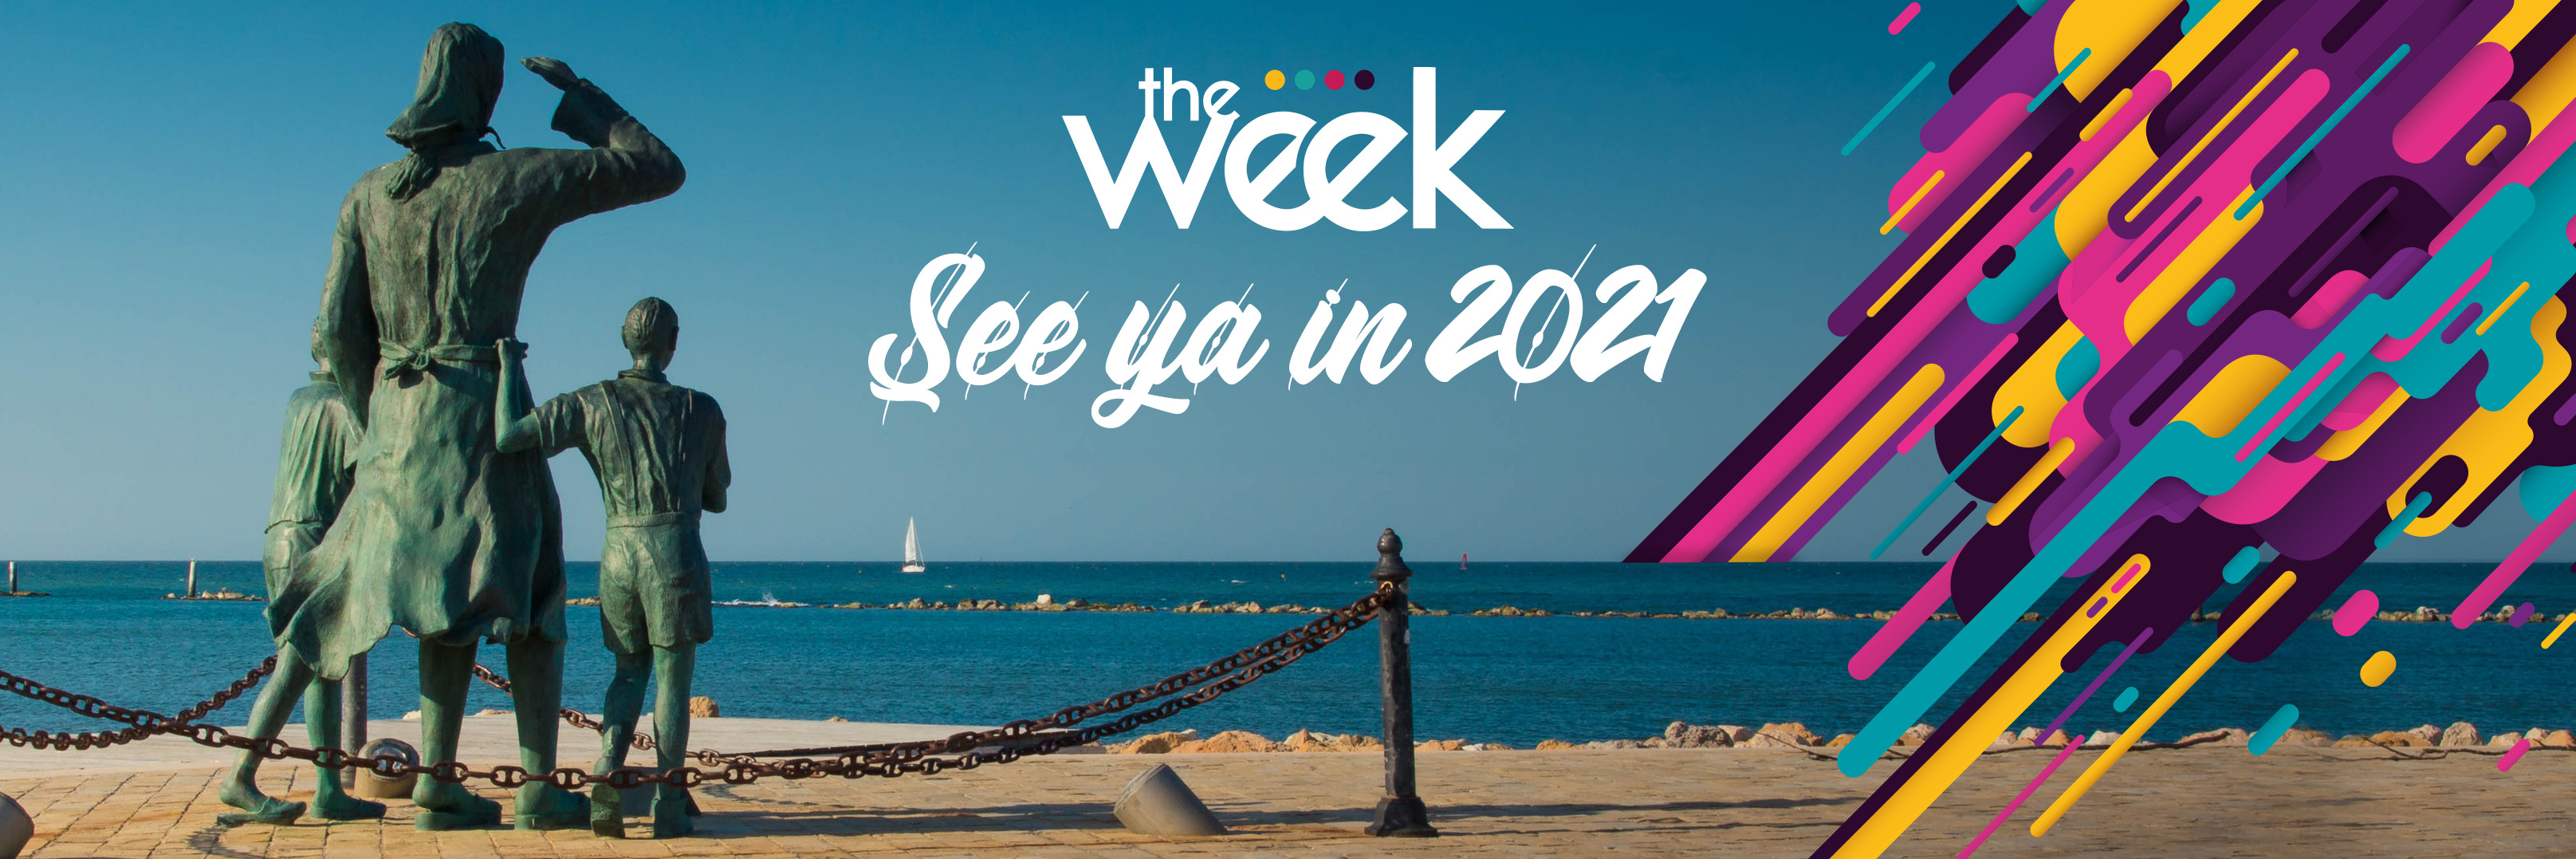 See Ya in 2021 The Week The WeeKidz Street Dance Summer Camp Cesenatico Italy Workshop Stage Hip Hop Festival